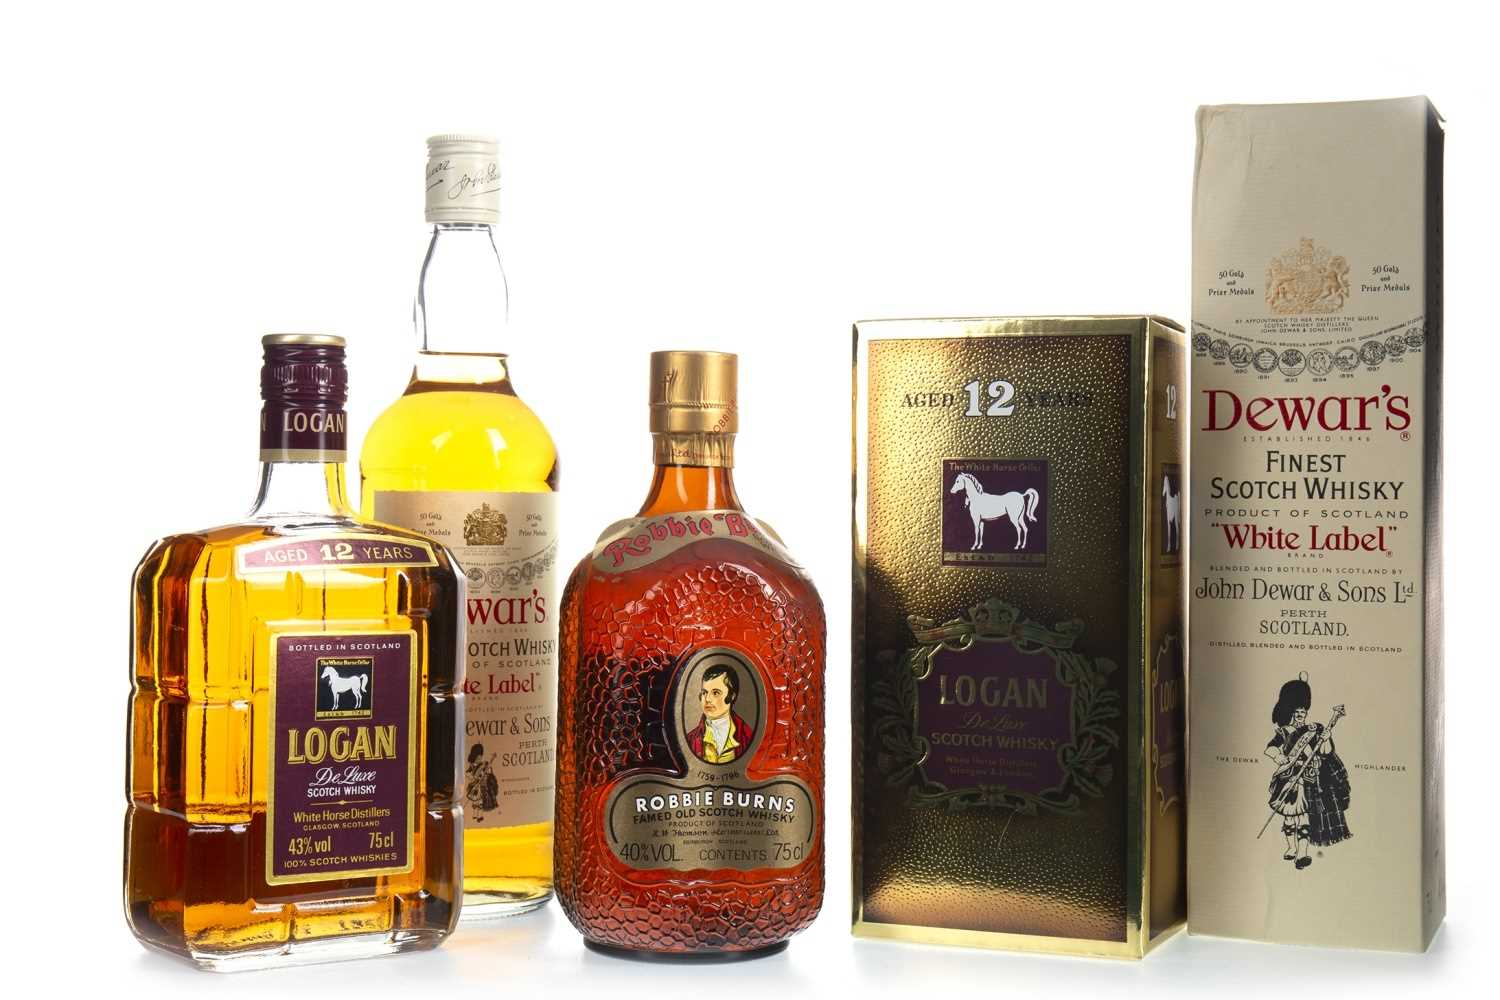 Lot 405-DEWAR'S WHITE LABEL, ROBBIE BURNS AND LOGAN AGED 12 YEARS